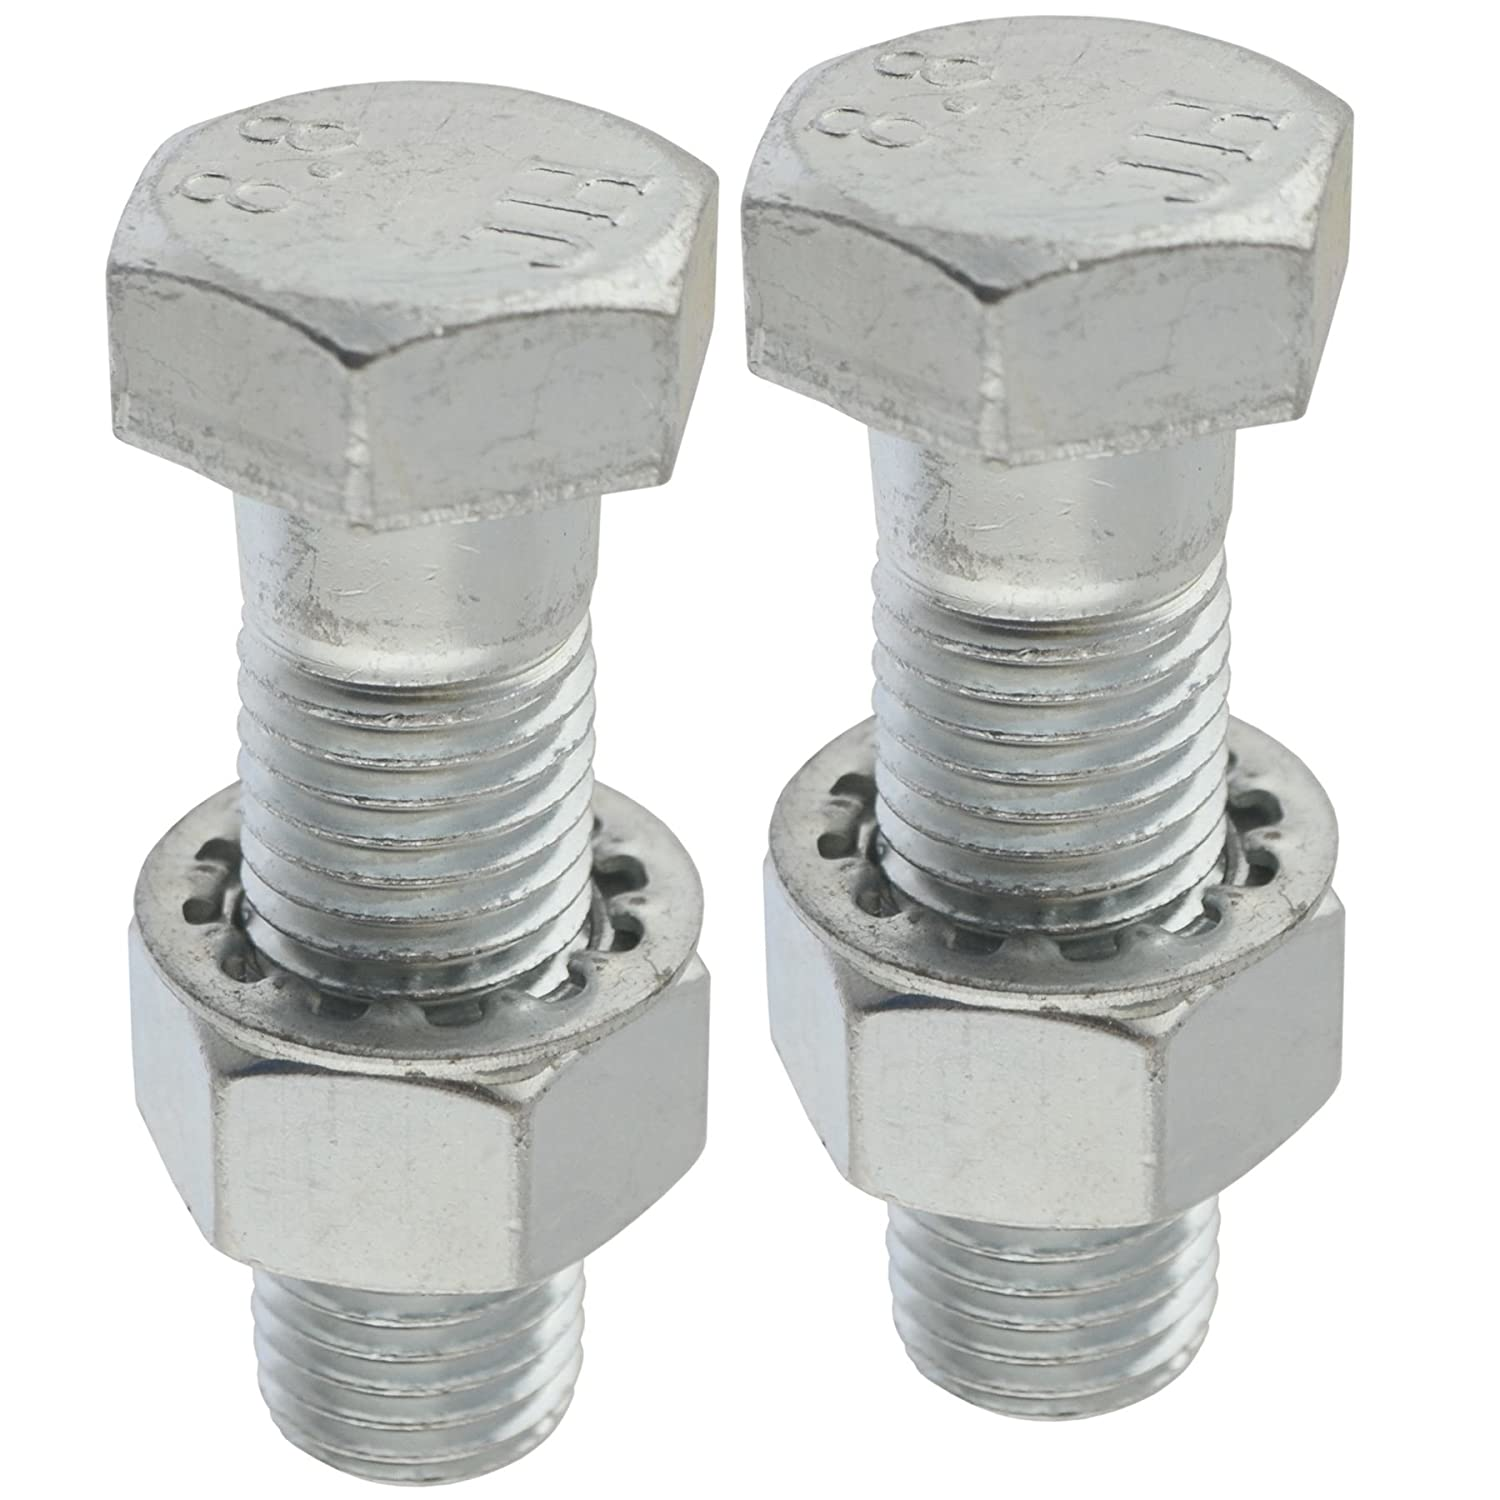 AB Tools-Maypole PAIR Tow Bar/Tow Ball Bolts 55mm Long with Nuts & Washers HIGH TENSILE